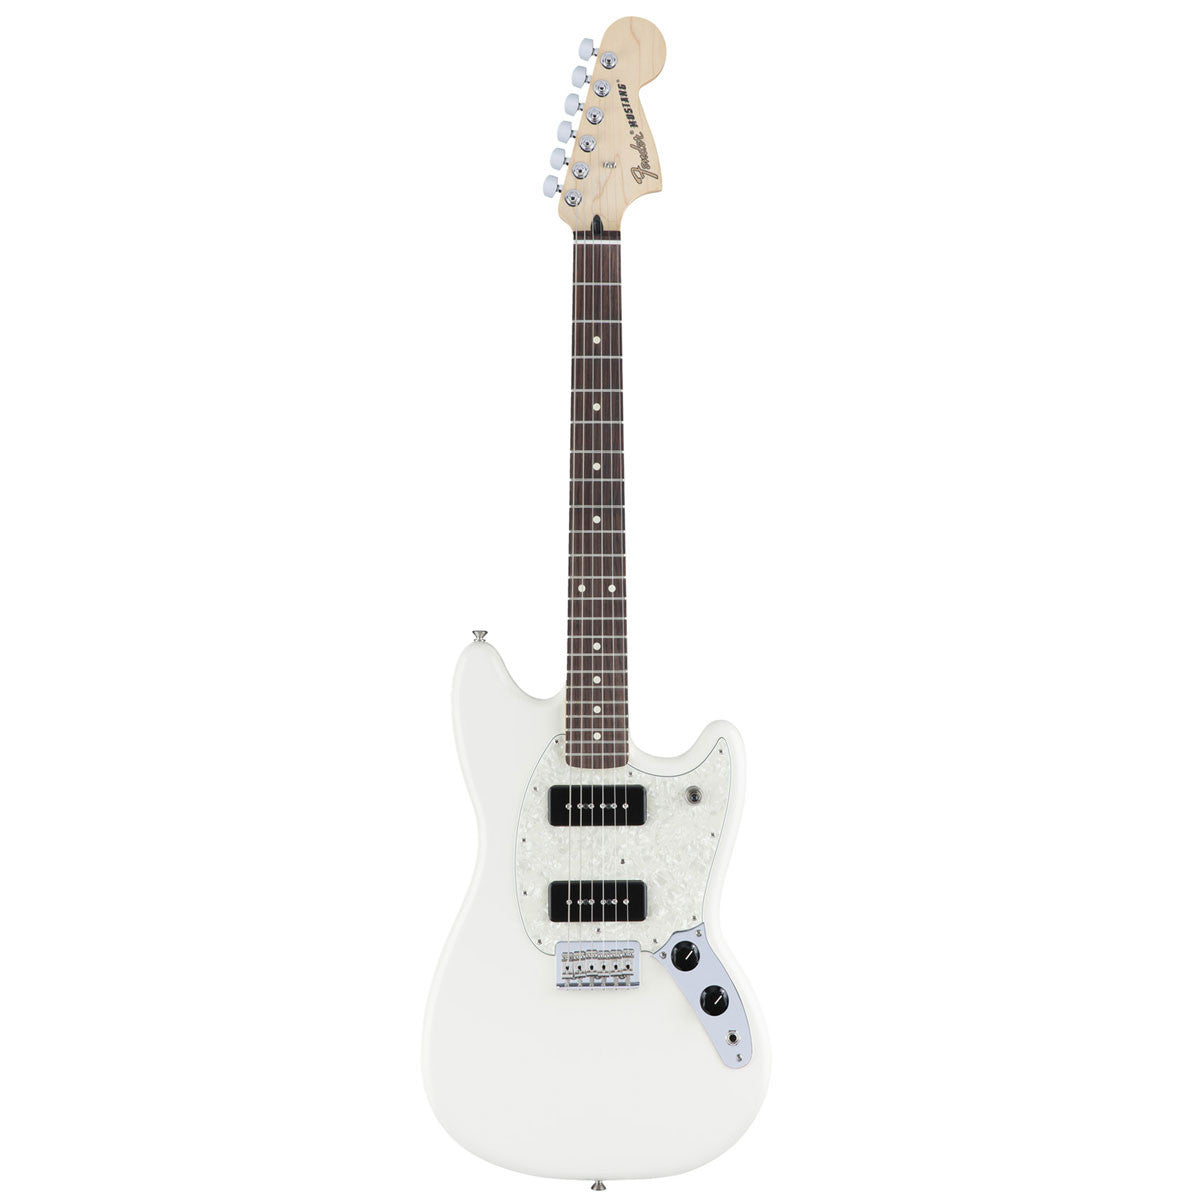 Fender Mustang 90 - Rosewood - Olympic White - Vintage Guitar Boutique